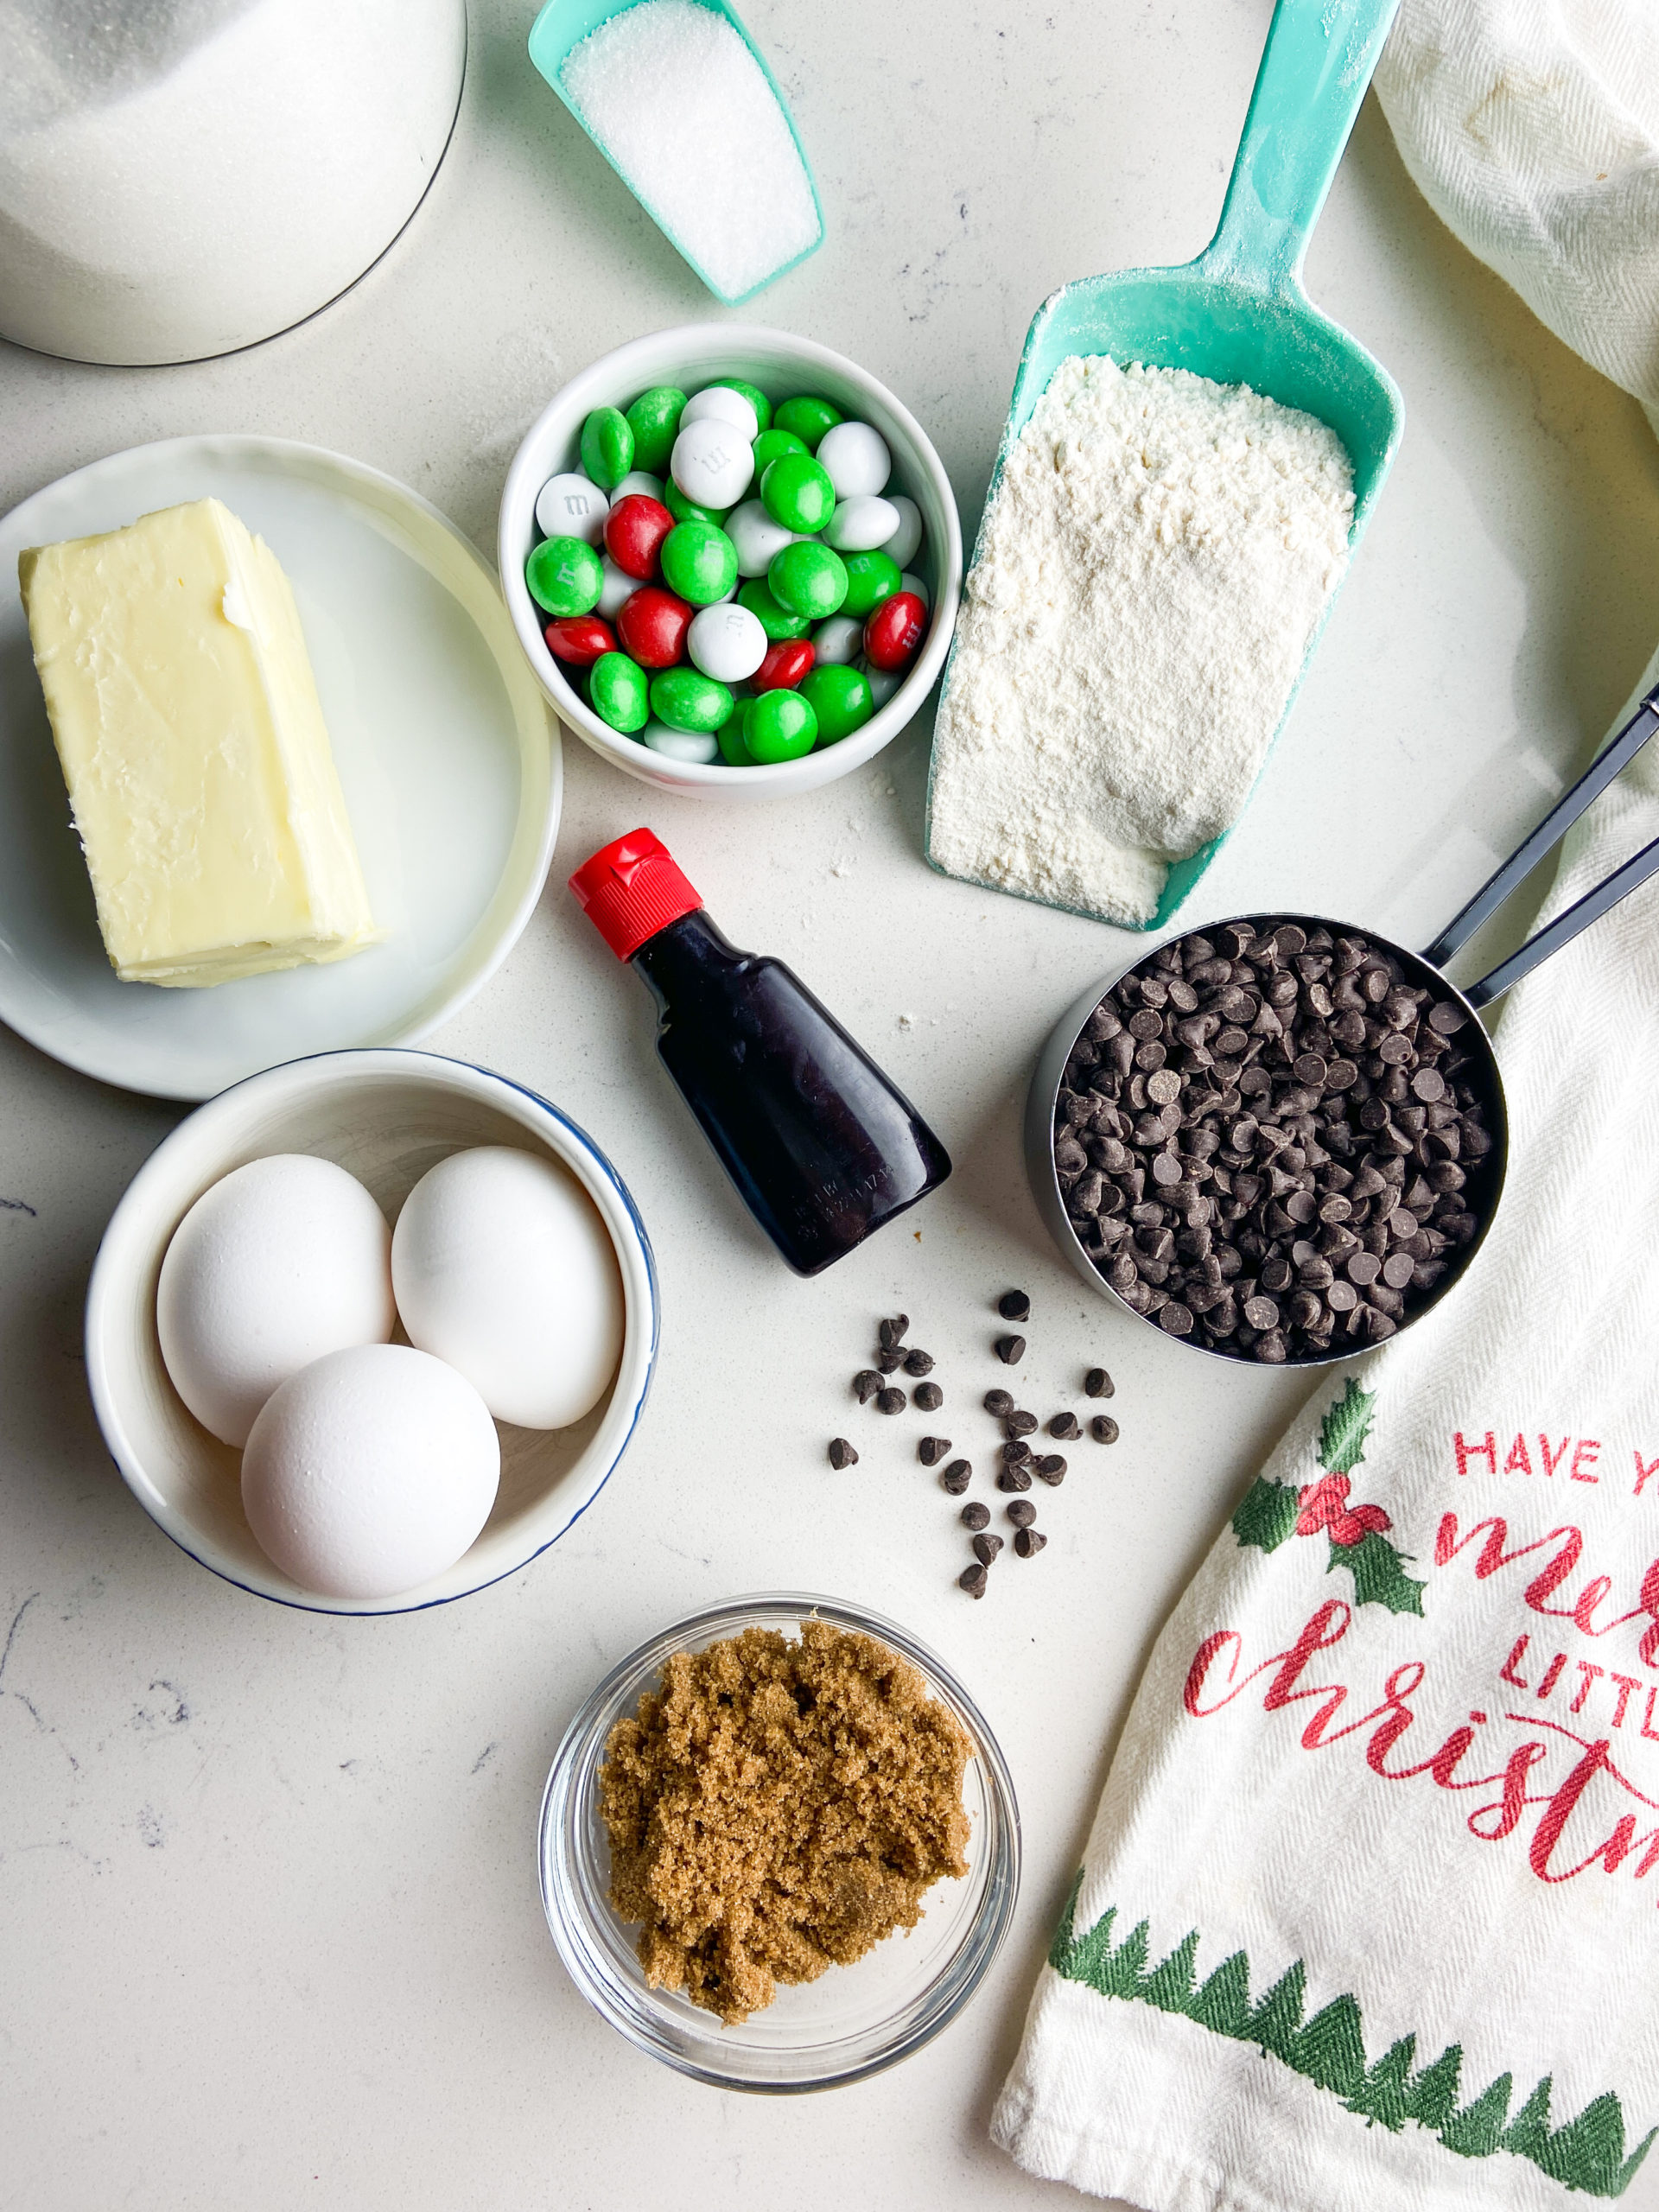 Ingredients for Mint M&M cookie bars